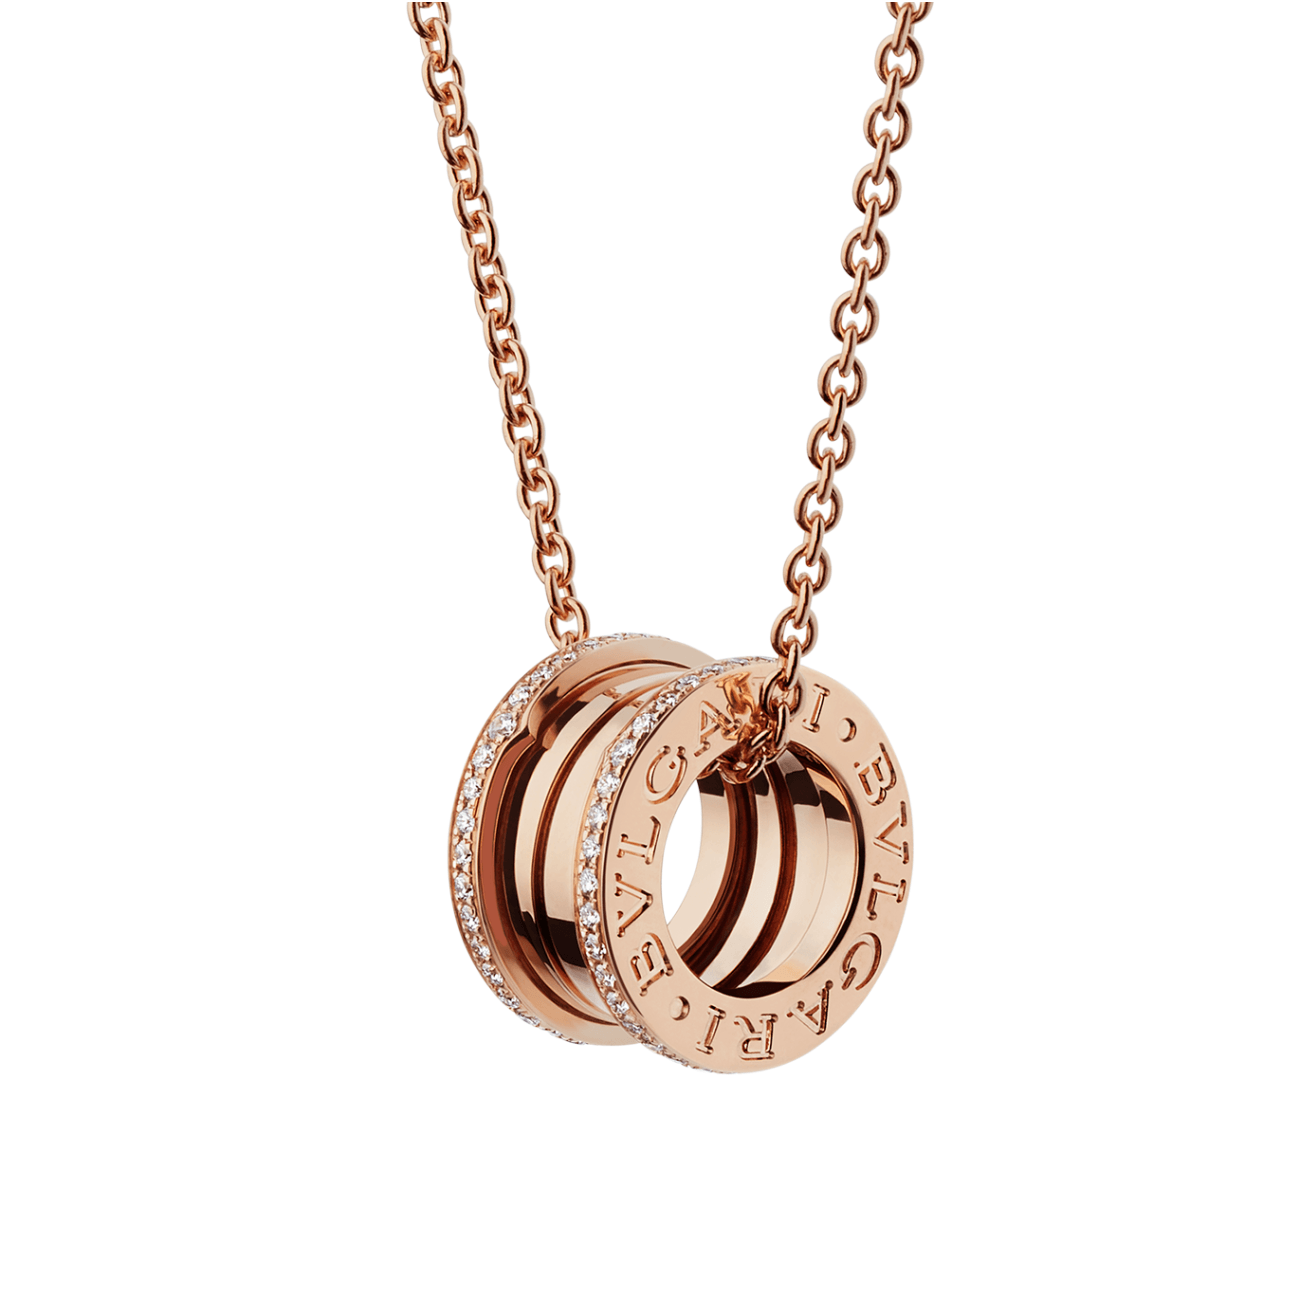 BVLGARI Jewelry - B.ZERO1 NECKLACE 350052 | Manfredi Jewels